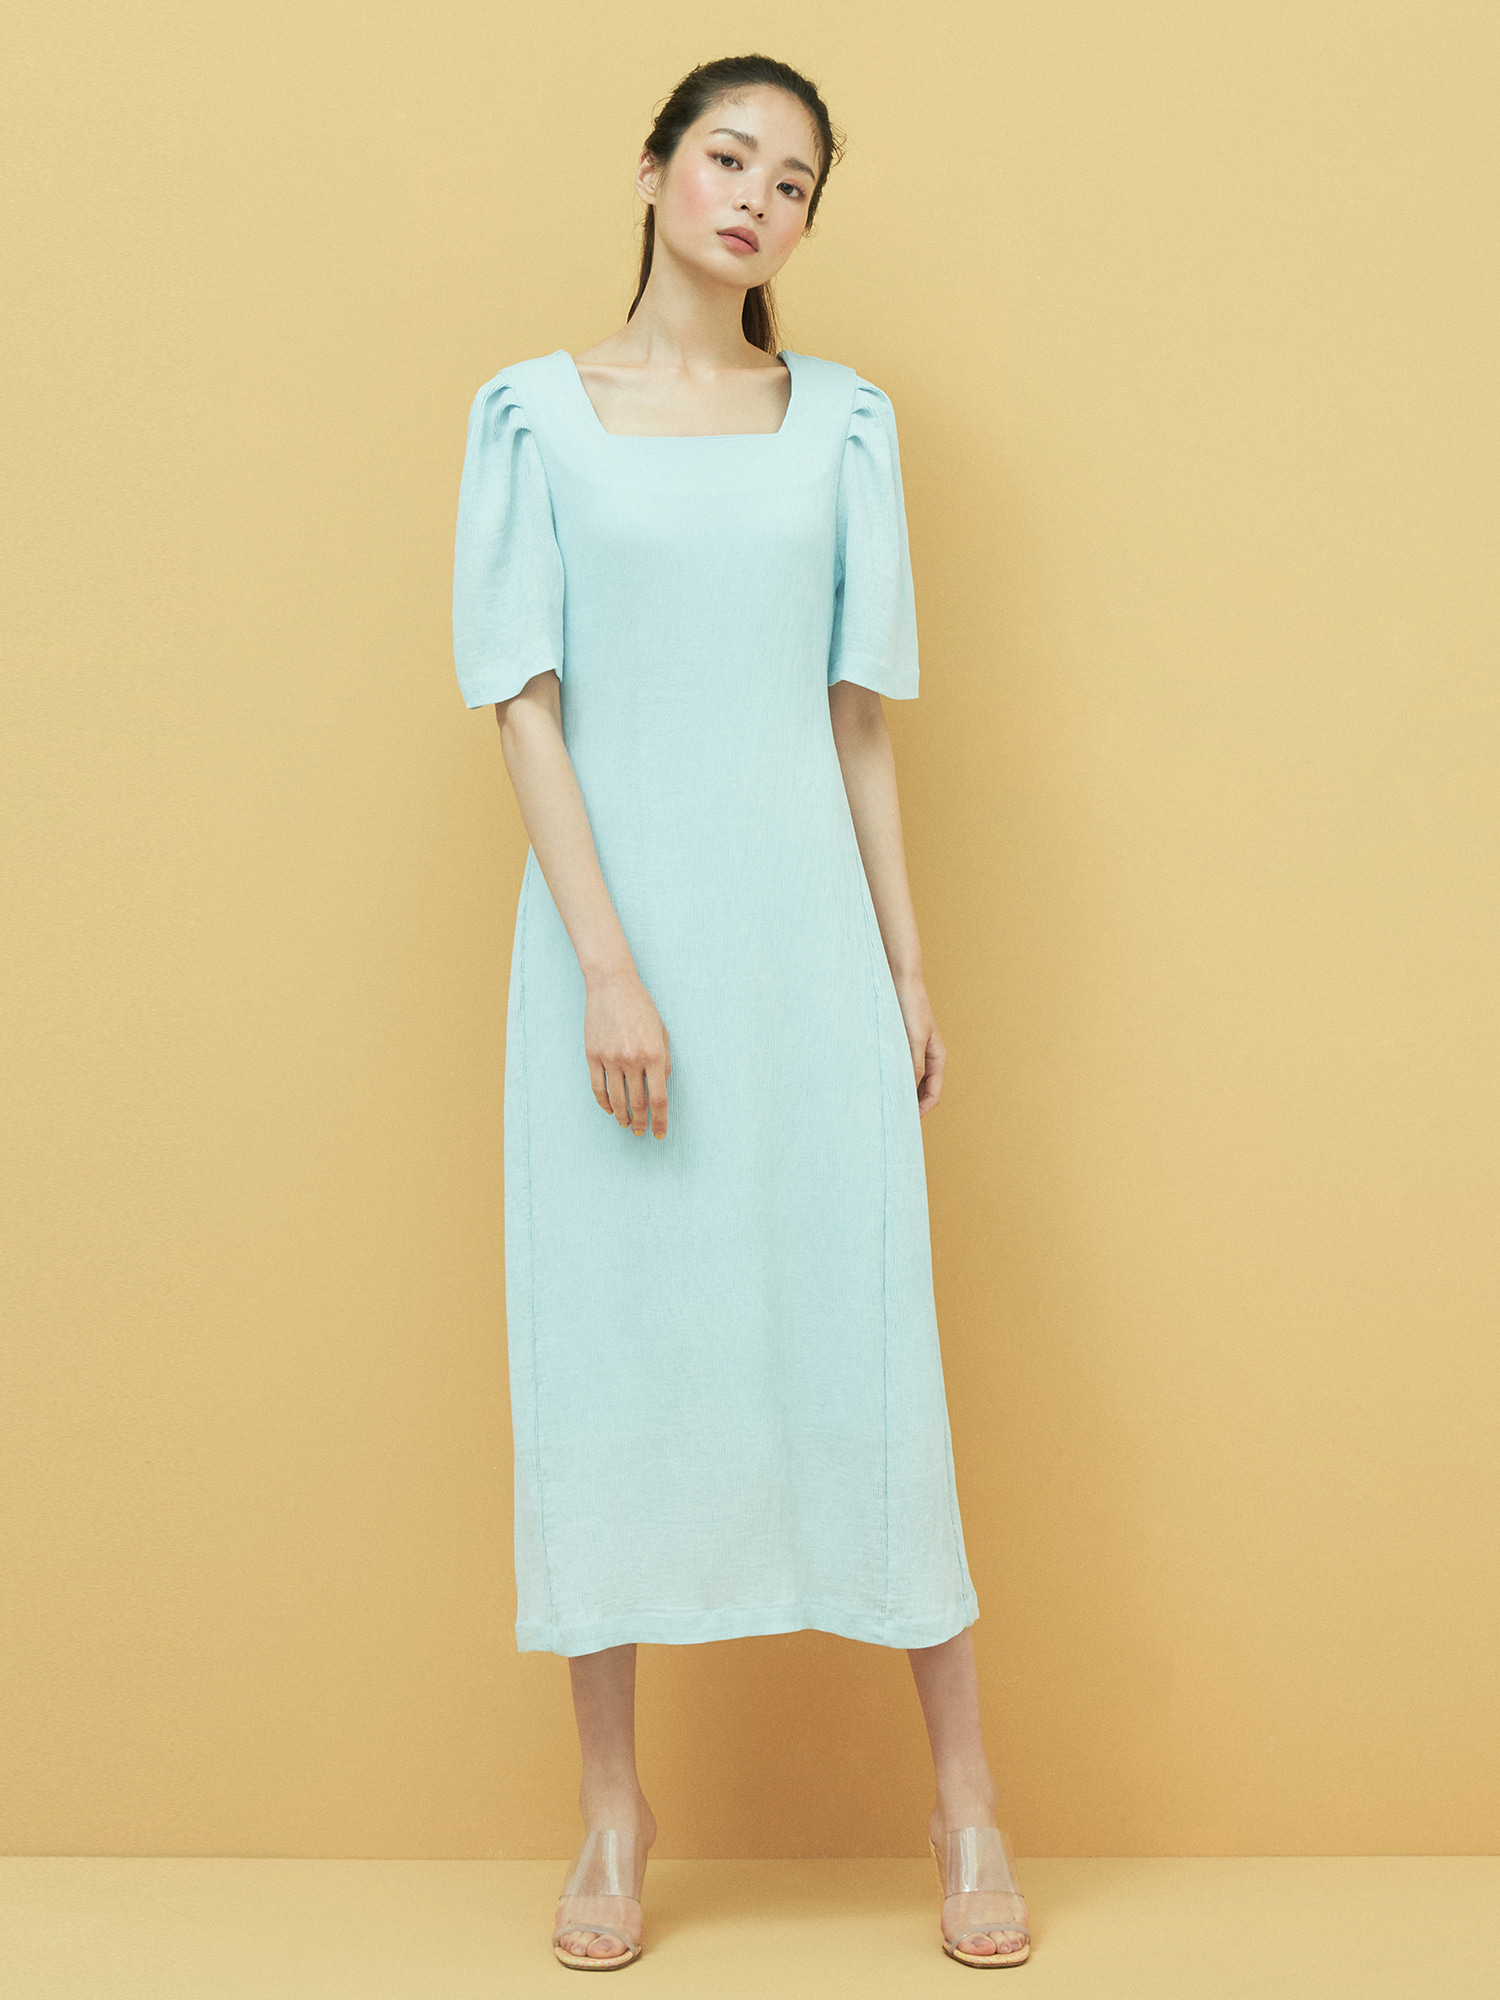 [6/4 예약배송] Square neck Minimal Dress in Sky Blue